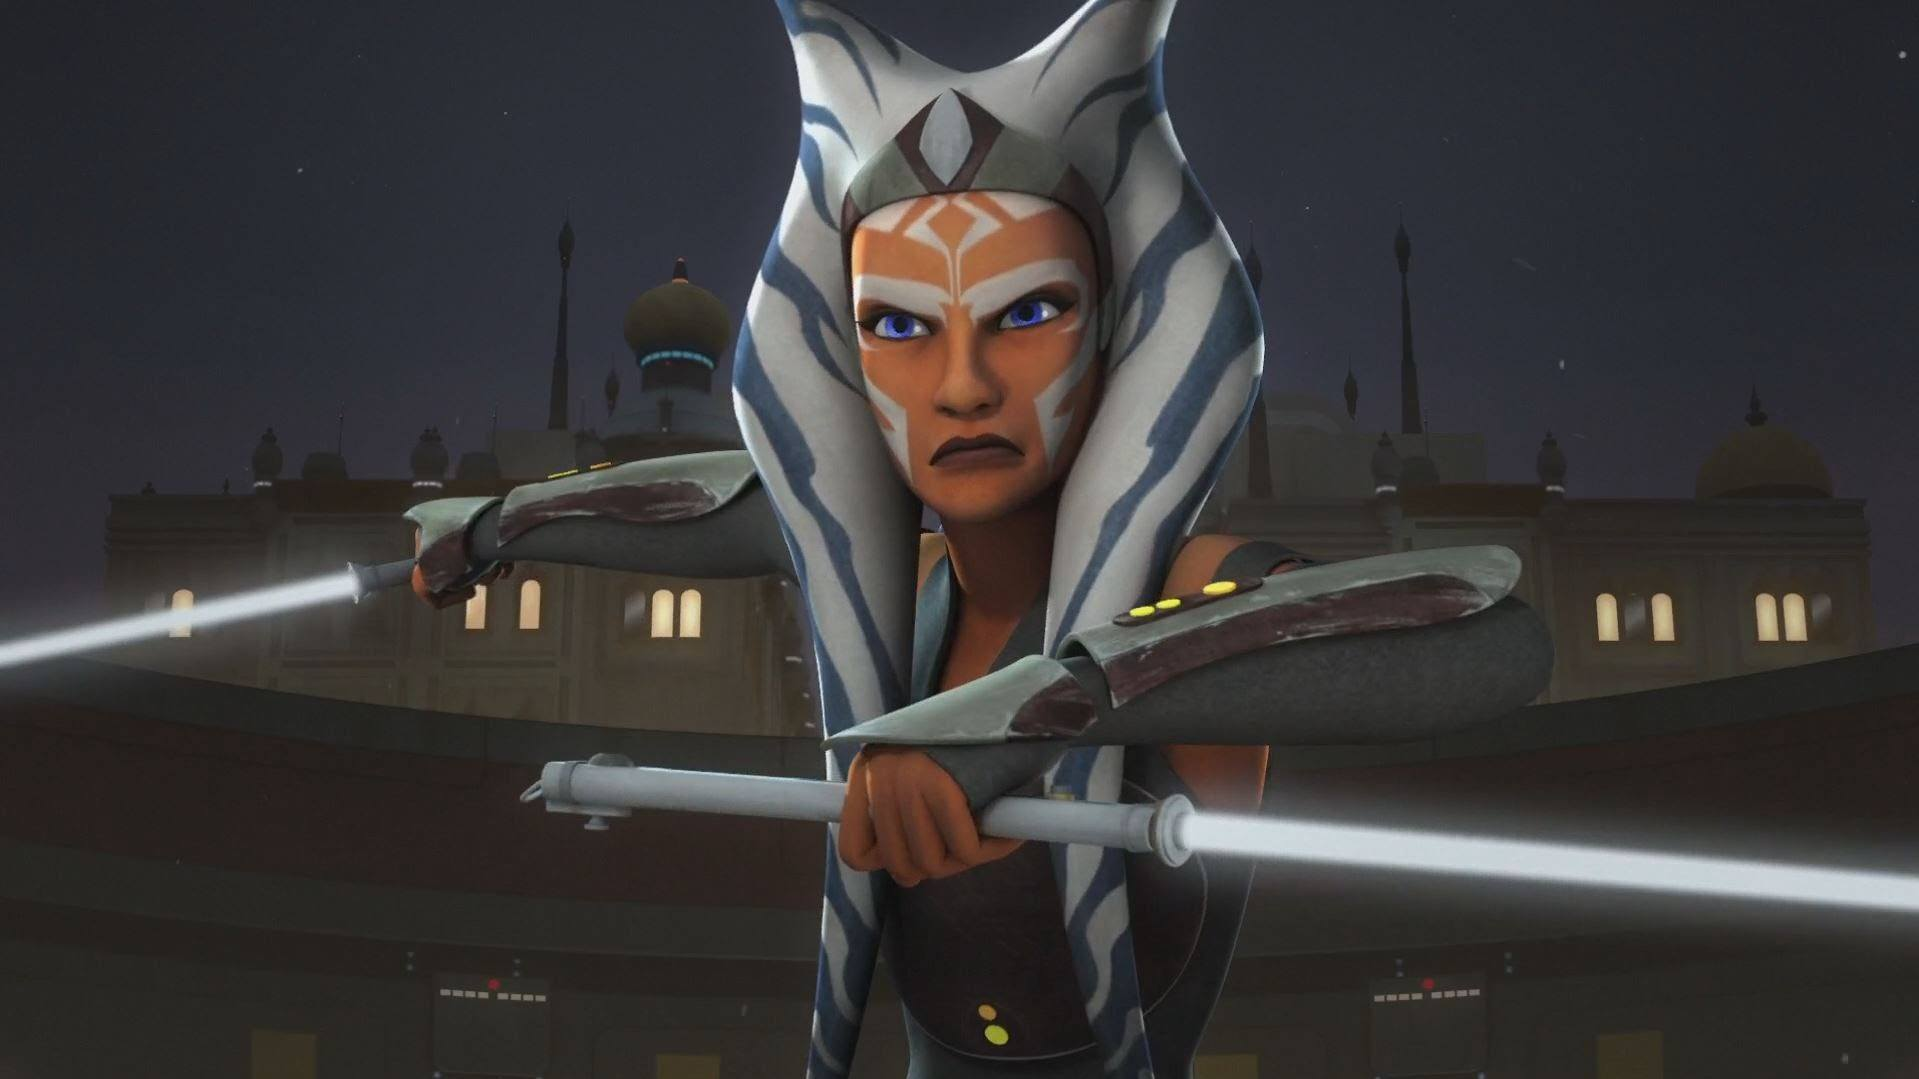 Ahsoka Tano yields a sword in Star Wars Rebels